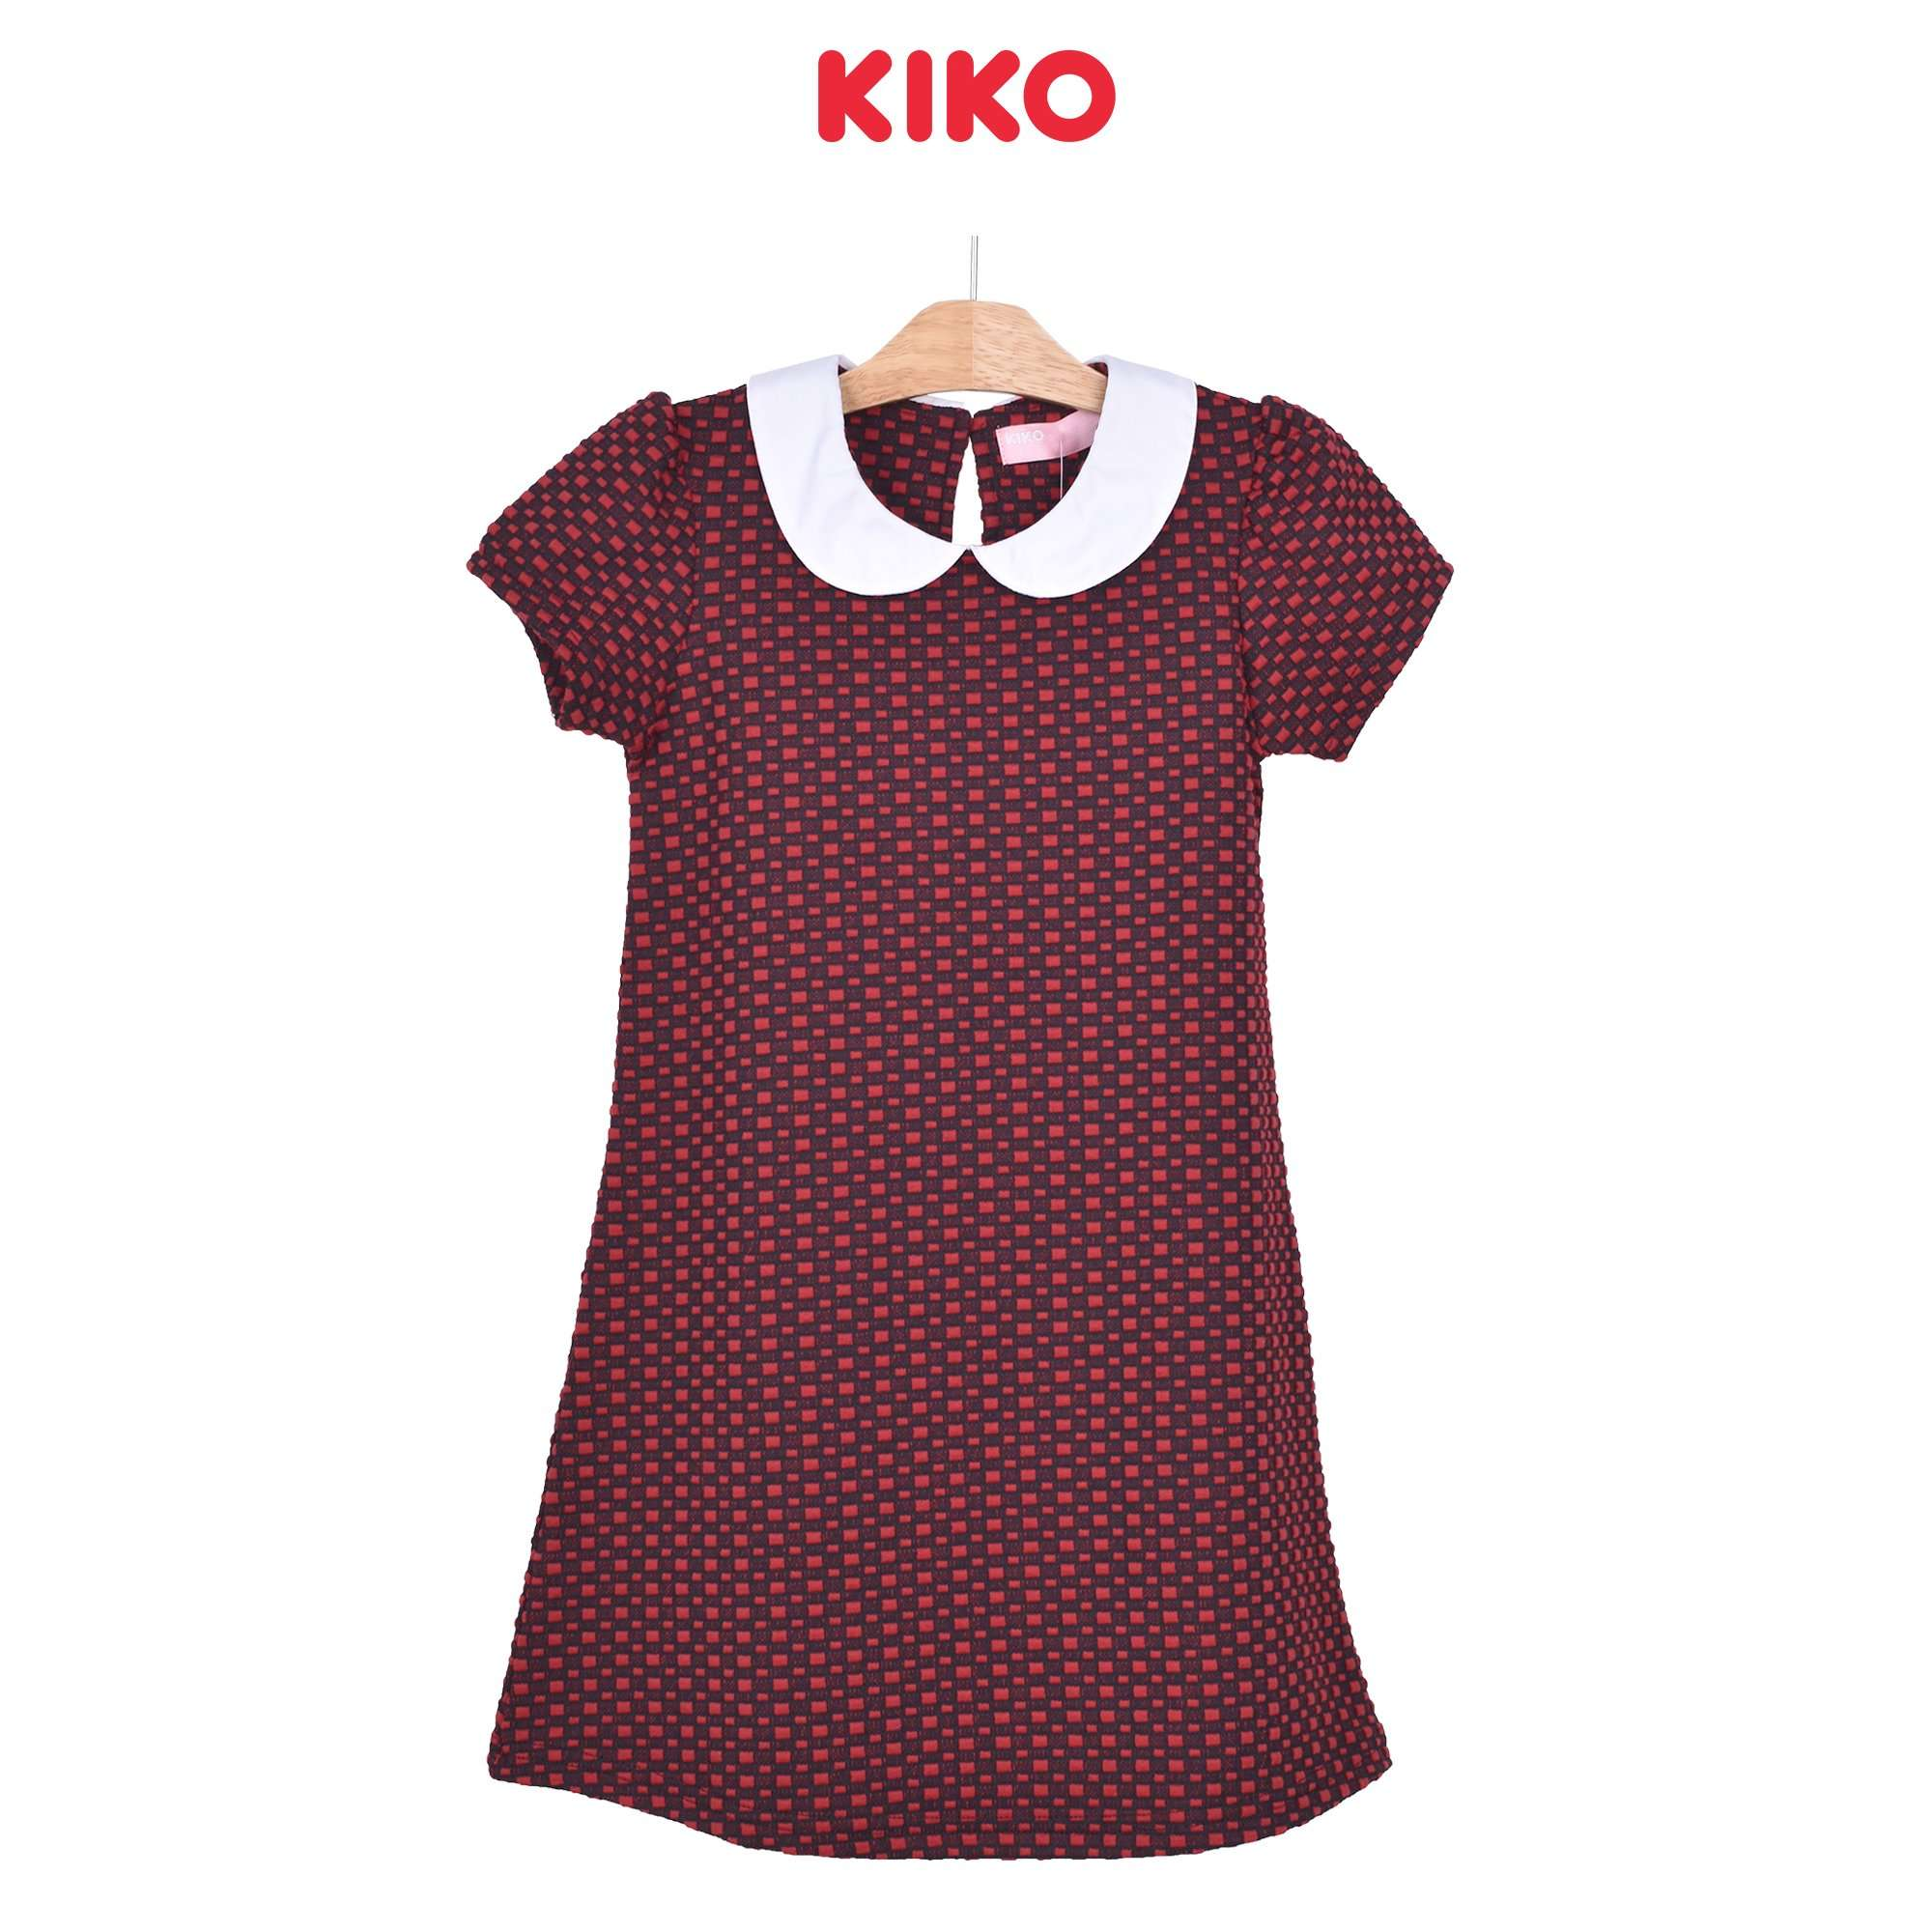 KIKO Girl Short Sleeve Dress - Red 126071-331 : Buy KIKO online at CMG.MY